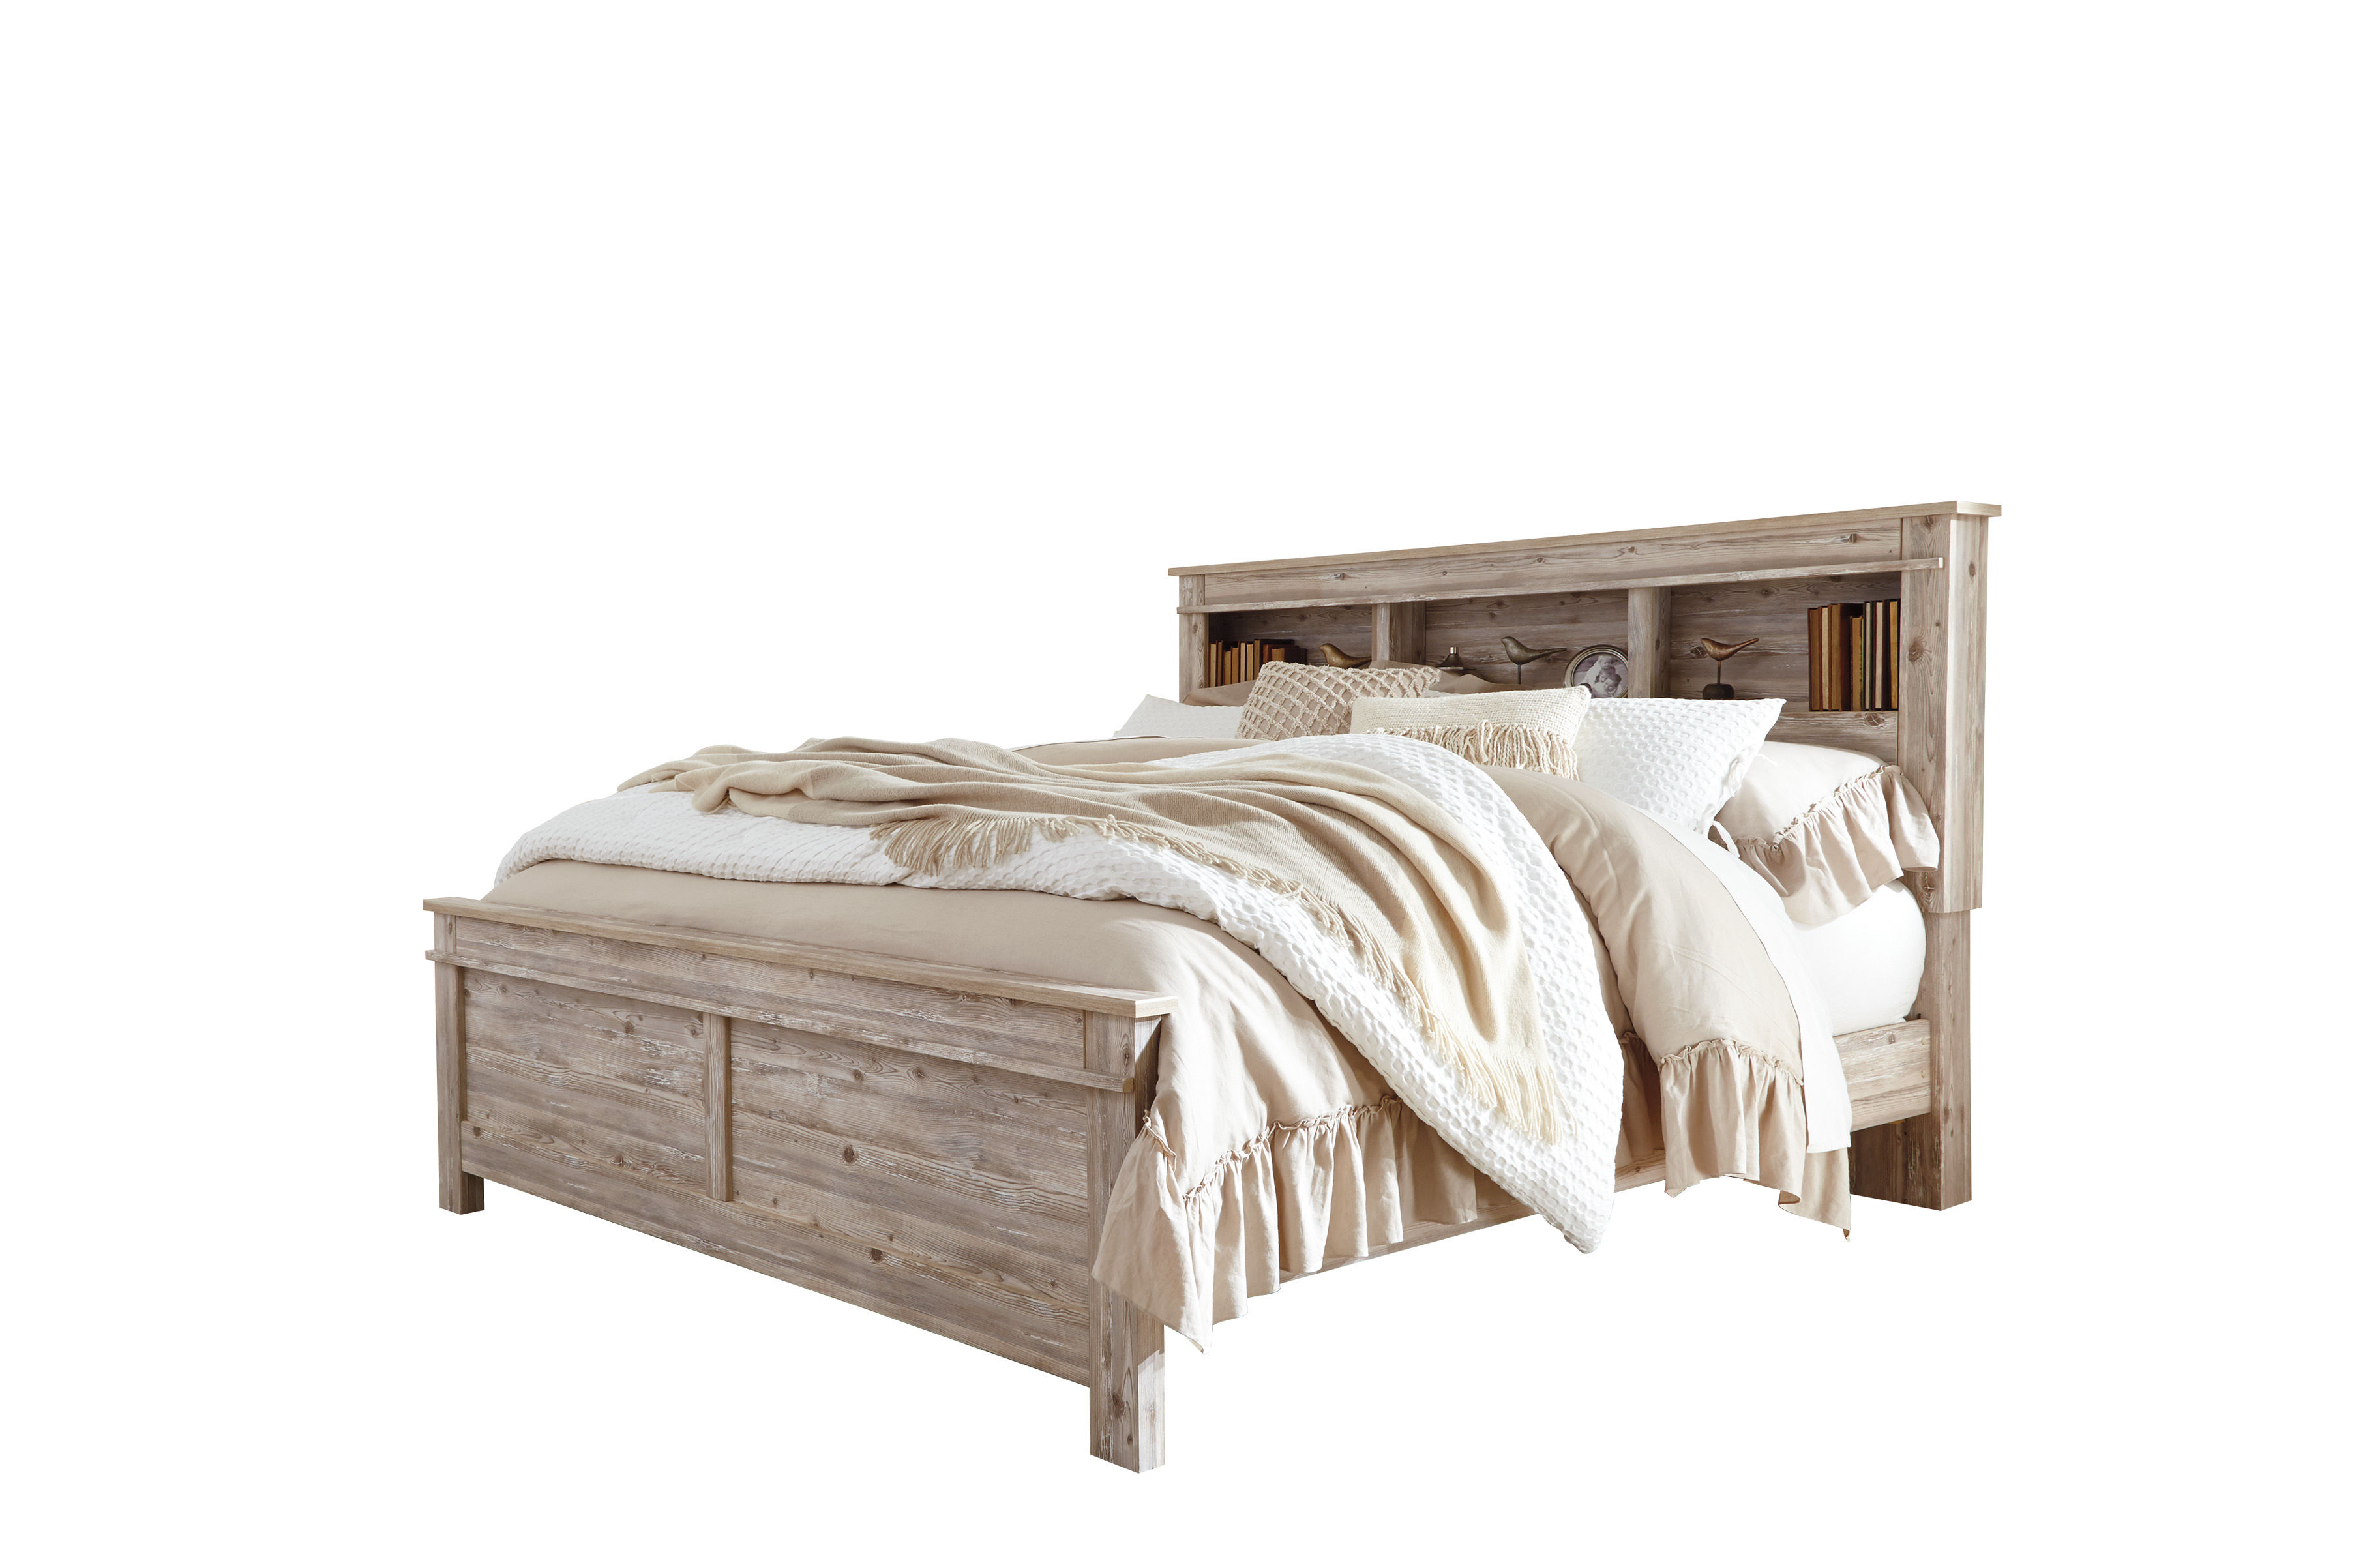 Ashley Furniture Willabry King Headboard With Bed Frame